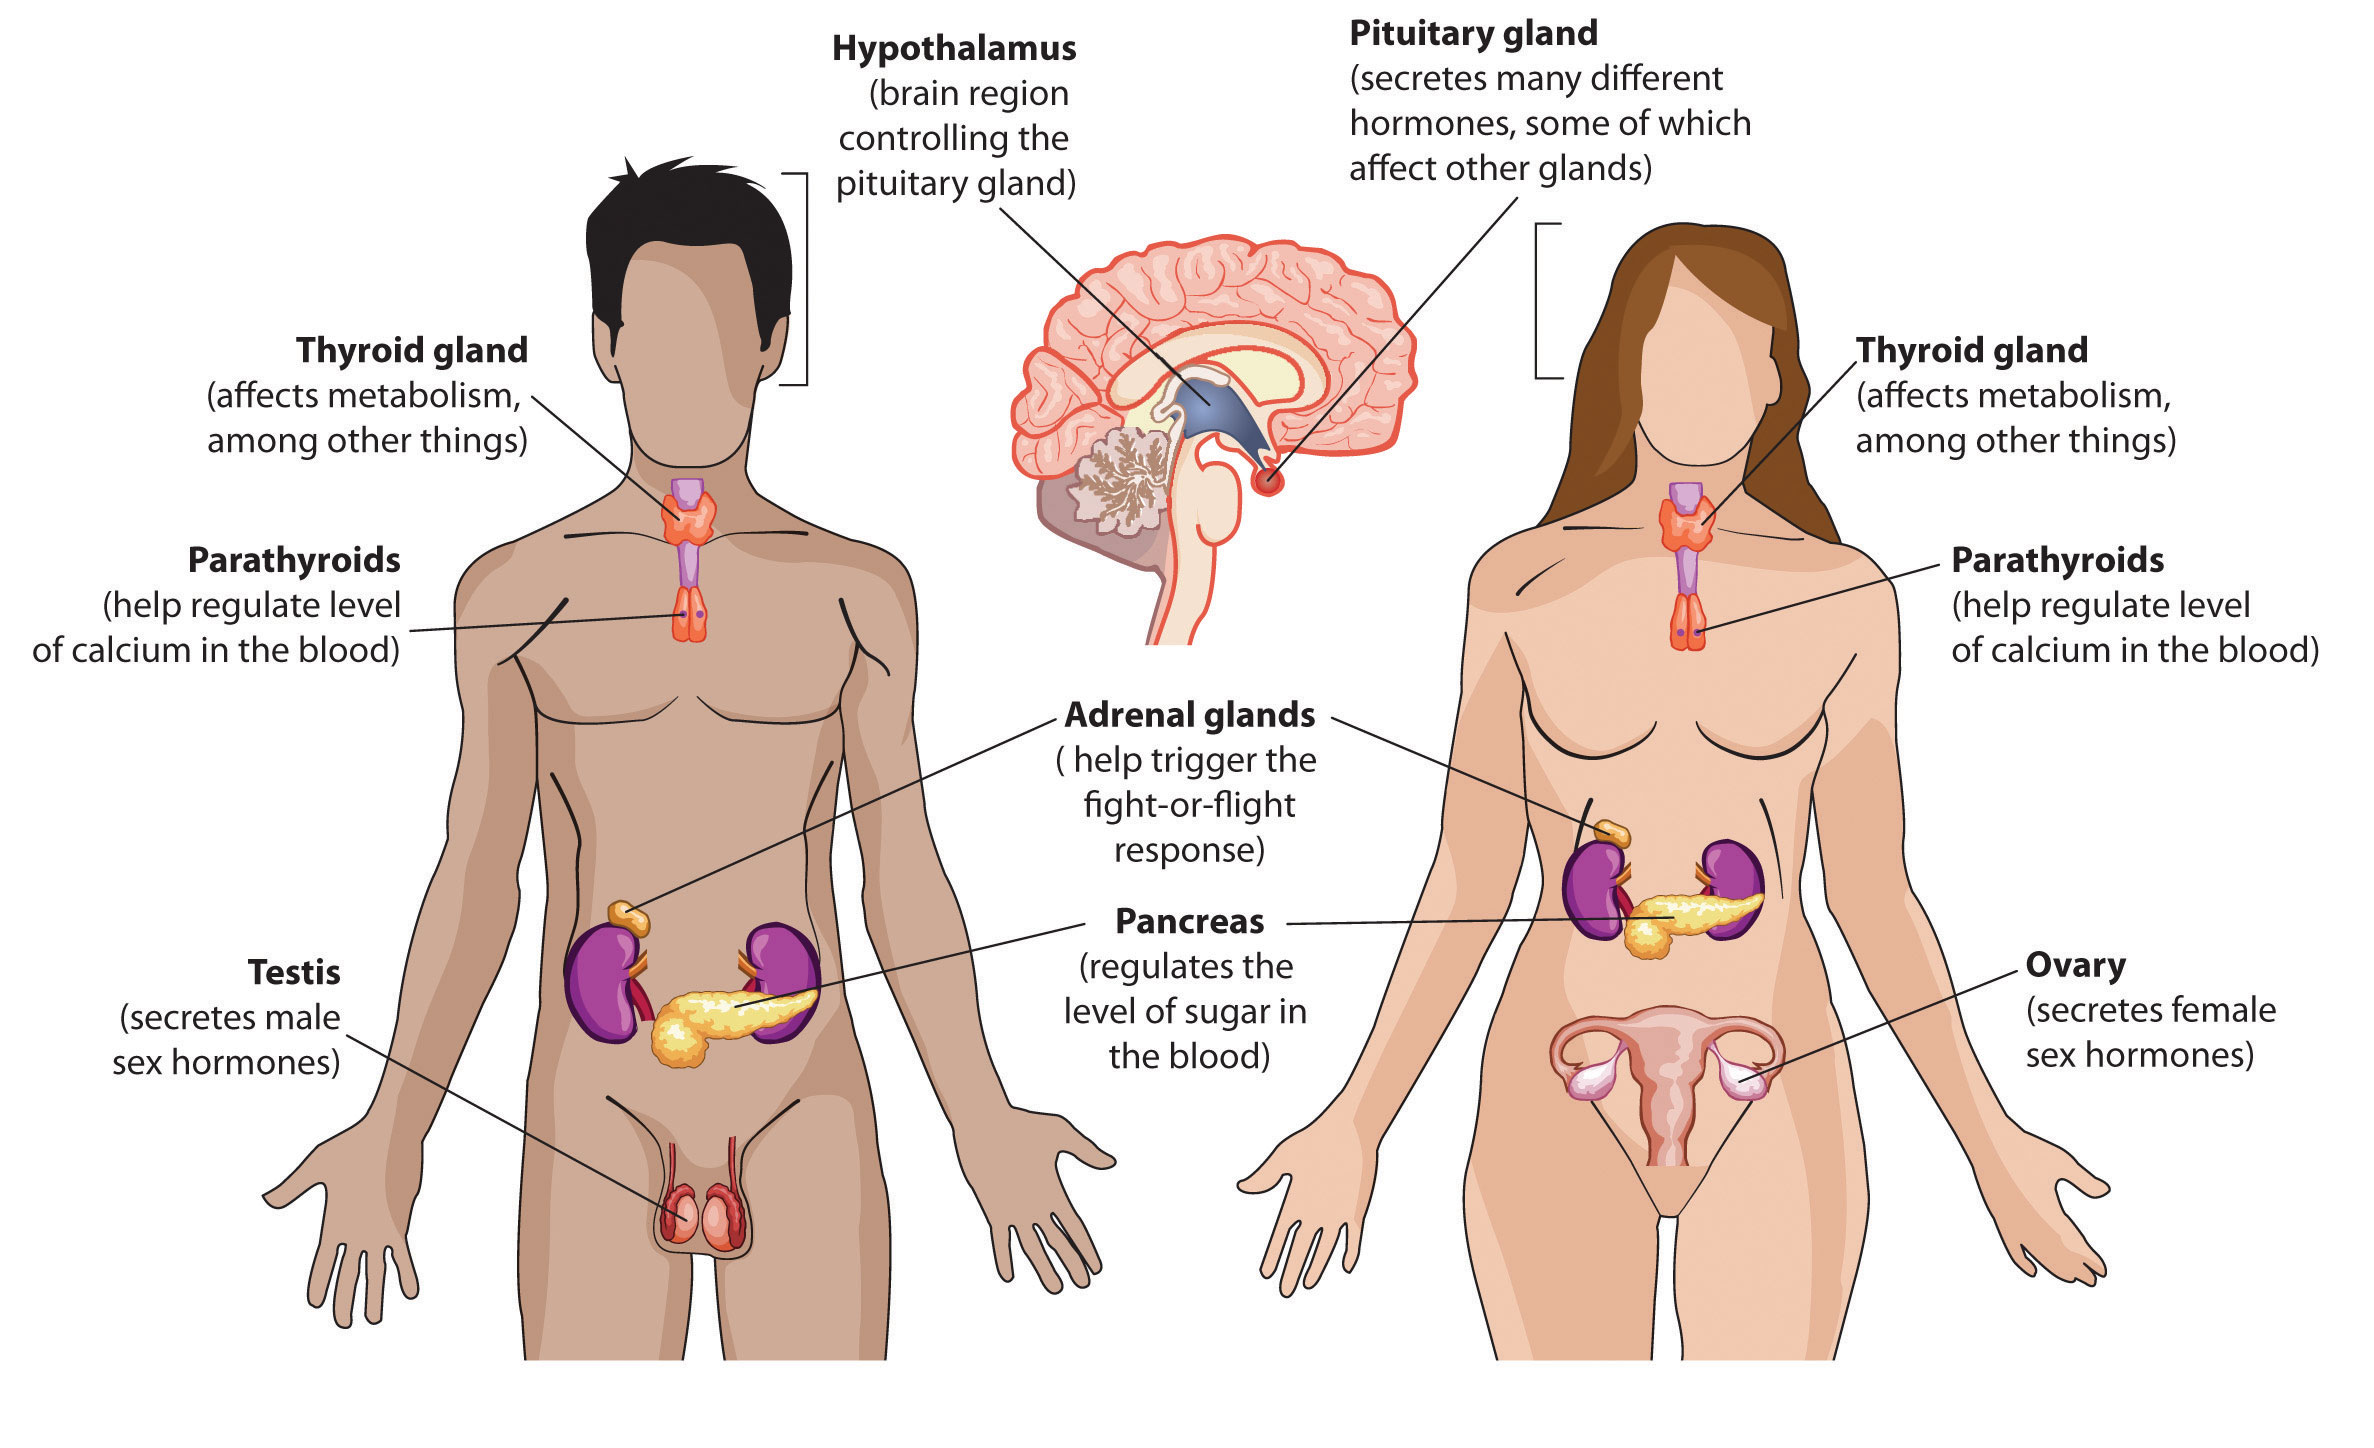 endocrine system | anatomy of the endocrine system, Cephalic Vein